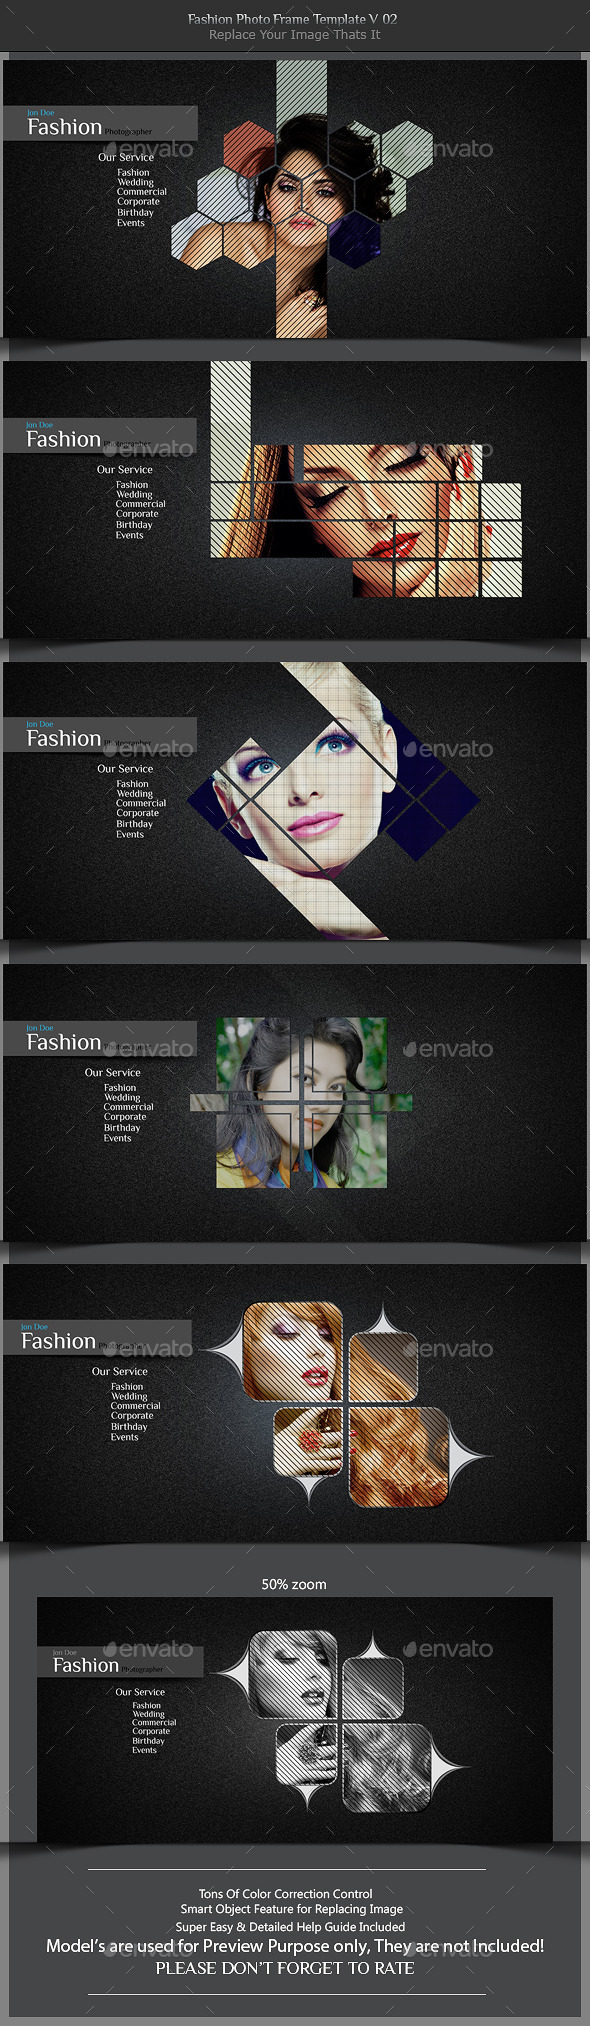 GraphicRiver Fashion Photo Frame Template v02 11337961